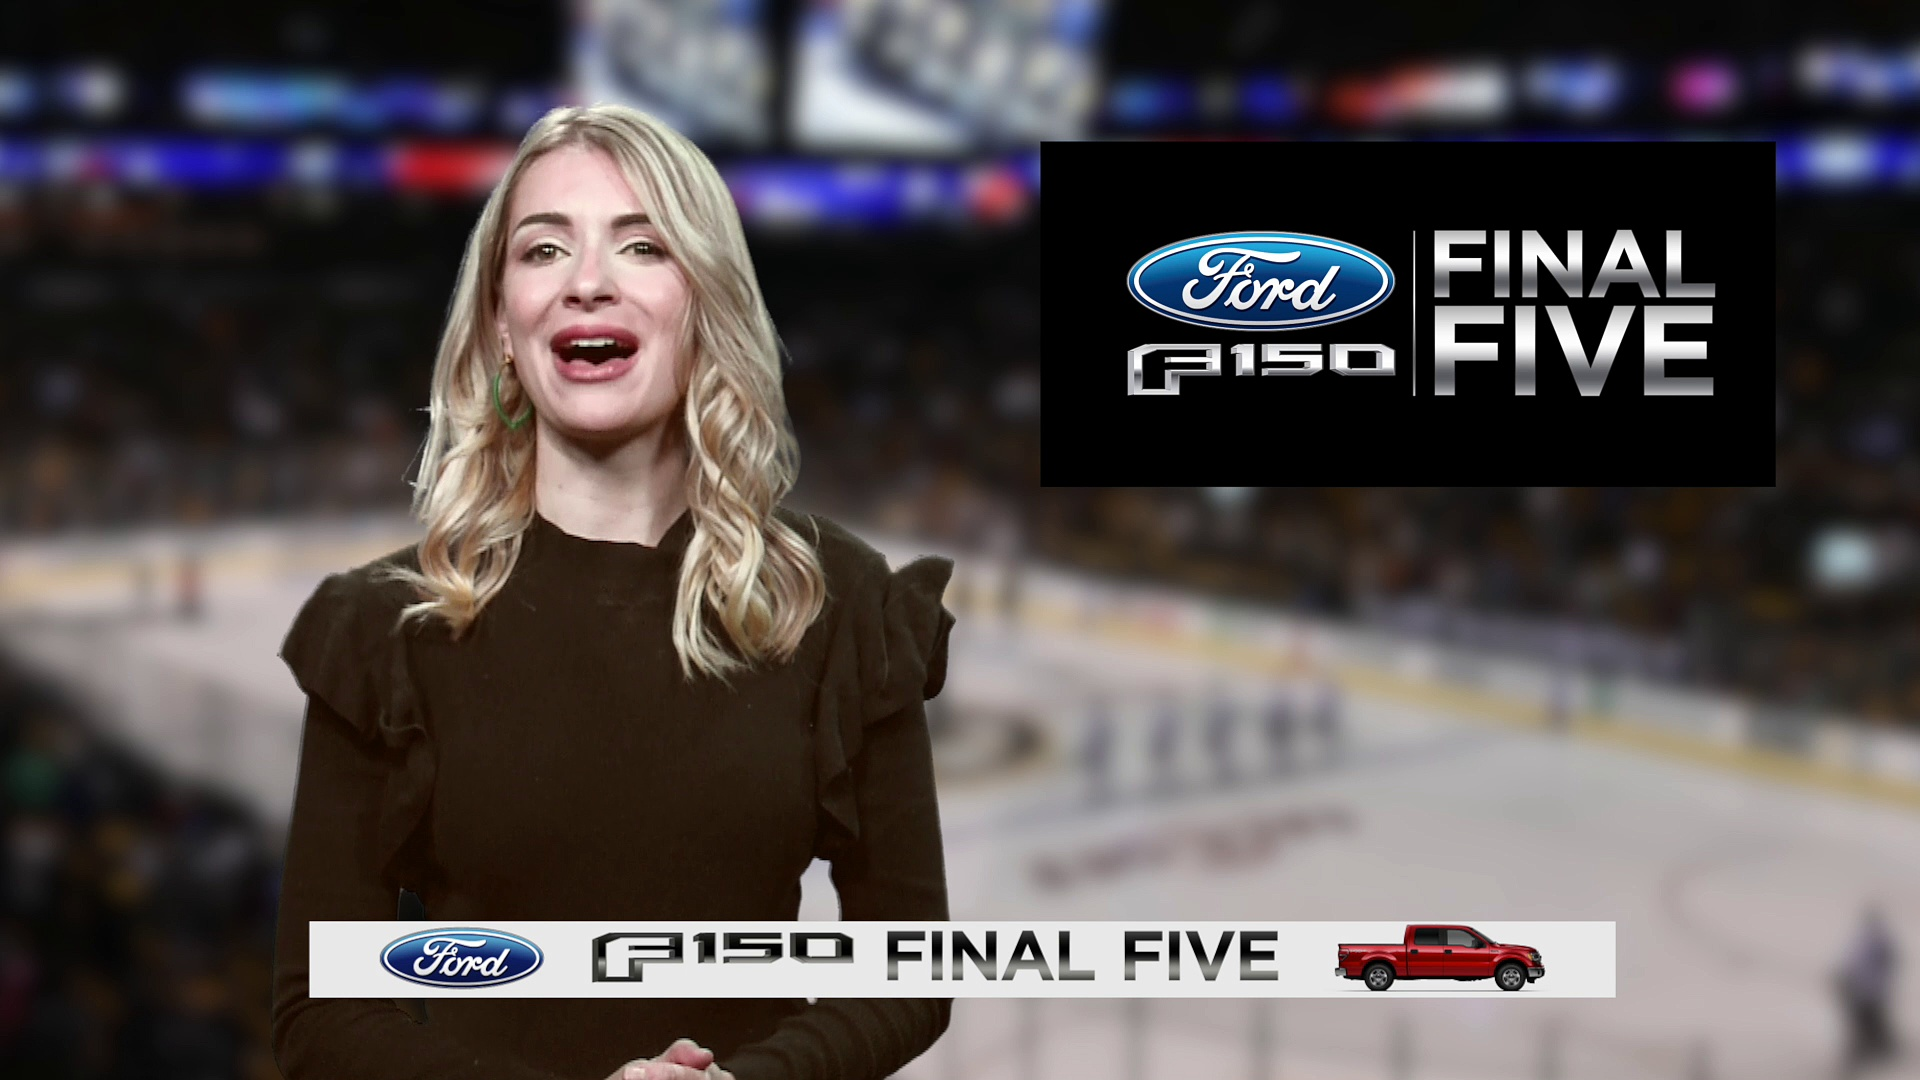 Ford F-150 Final Five: Jaroslav Halak, Bruins Blank Flyers